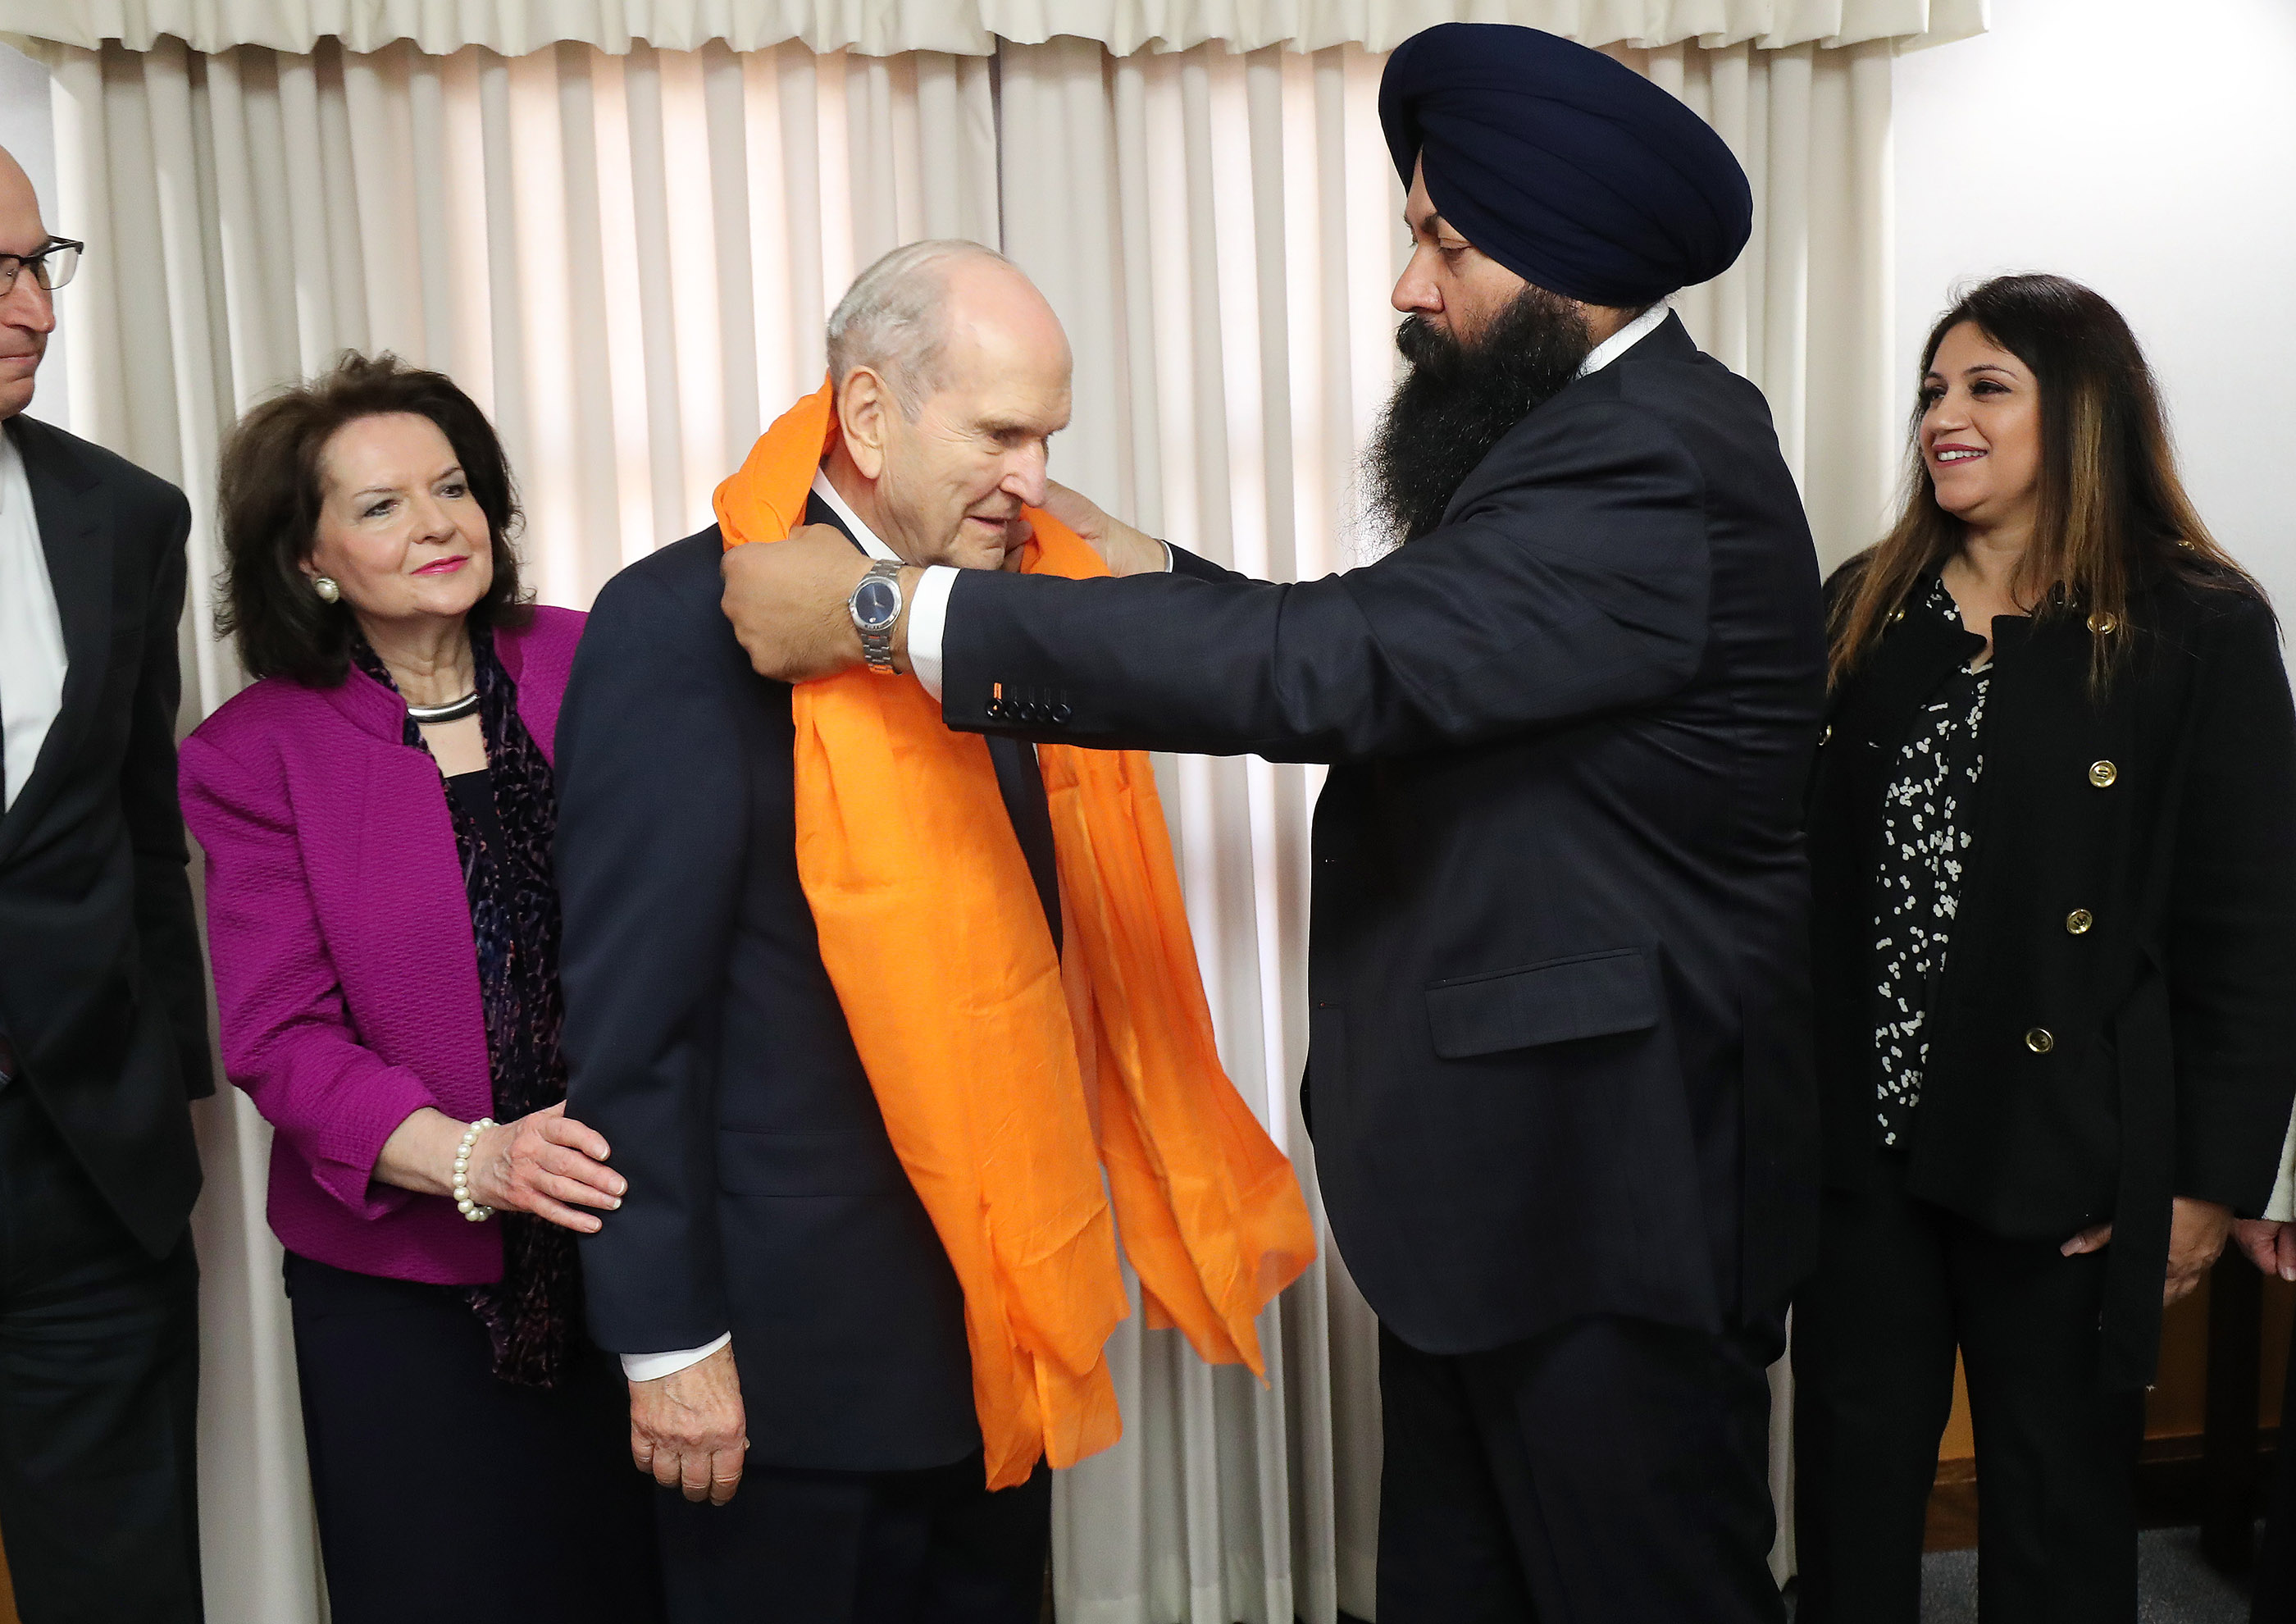 President Russell M. Nelson of The Church of Jesus Christ of Latter-day Saints is honored with a Saropah from Sikh leader Karmdeep Bains in Chico, California, on Sunday, Jan. 13, 2019, two months after the Camp Fire destroyed more than 18,000 homes and businesses. Sister Wendy Nelson, left, and Harpreet Bians look on.